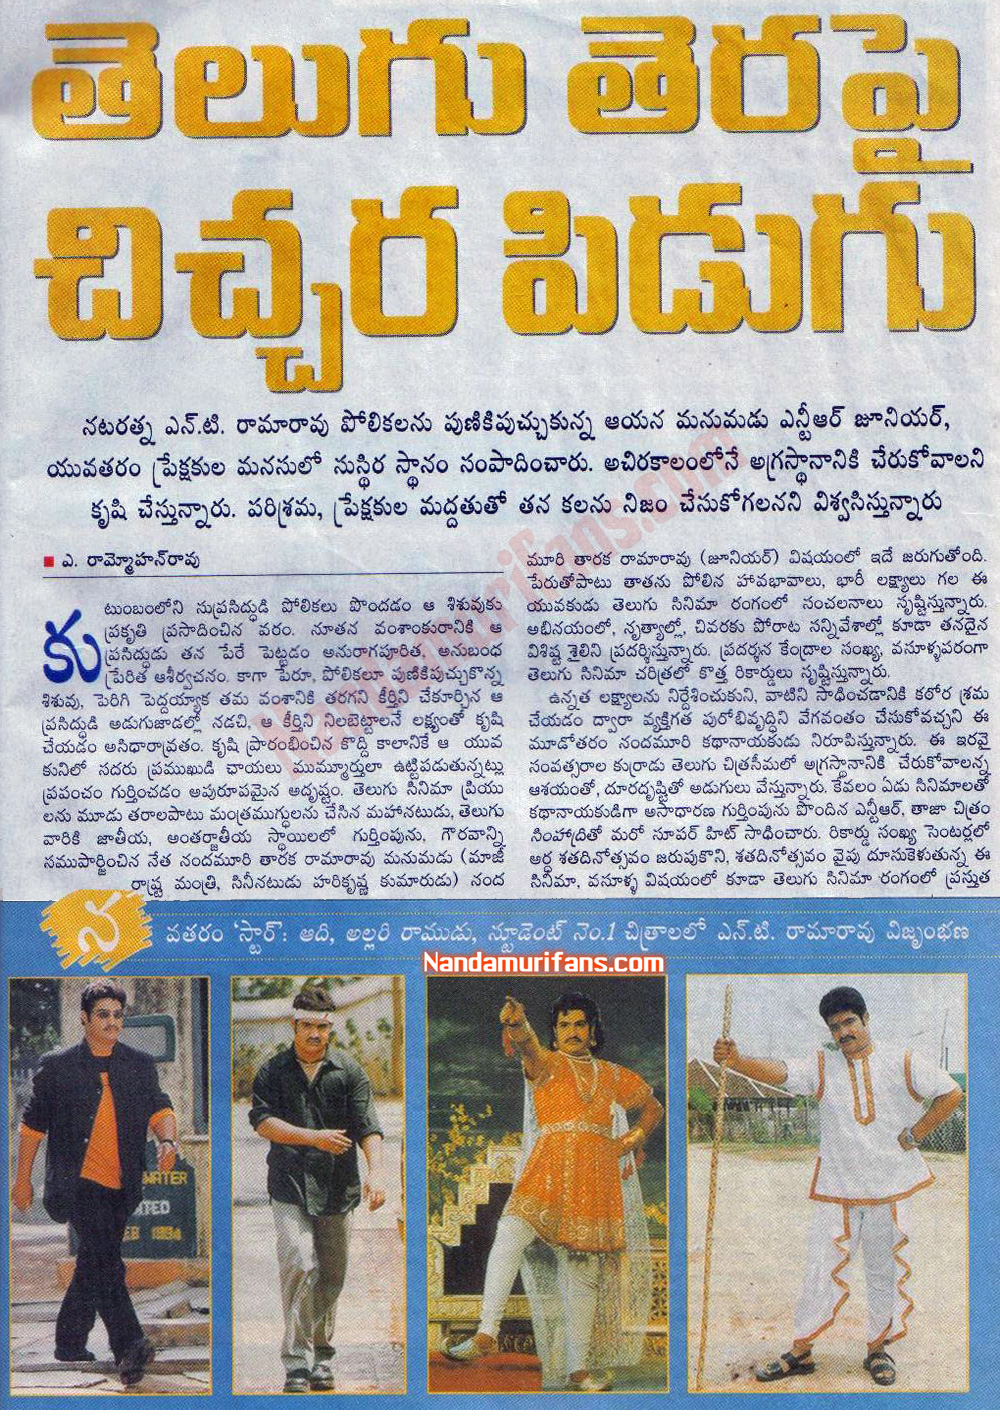 Indiatoday mainicle on NTR Jr. -2